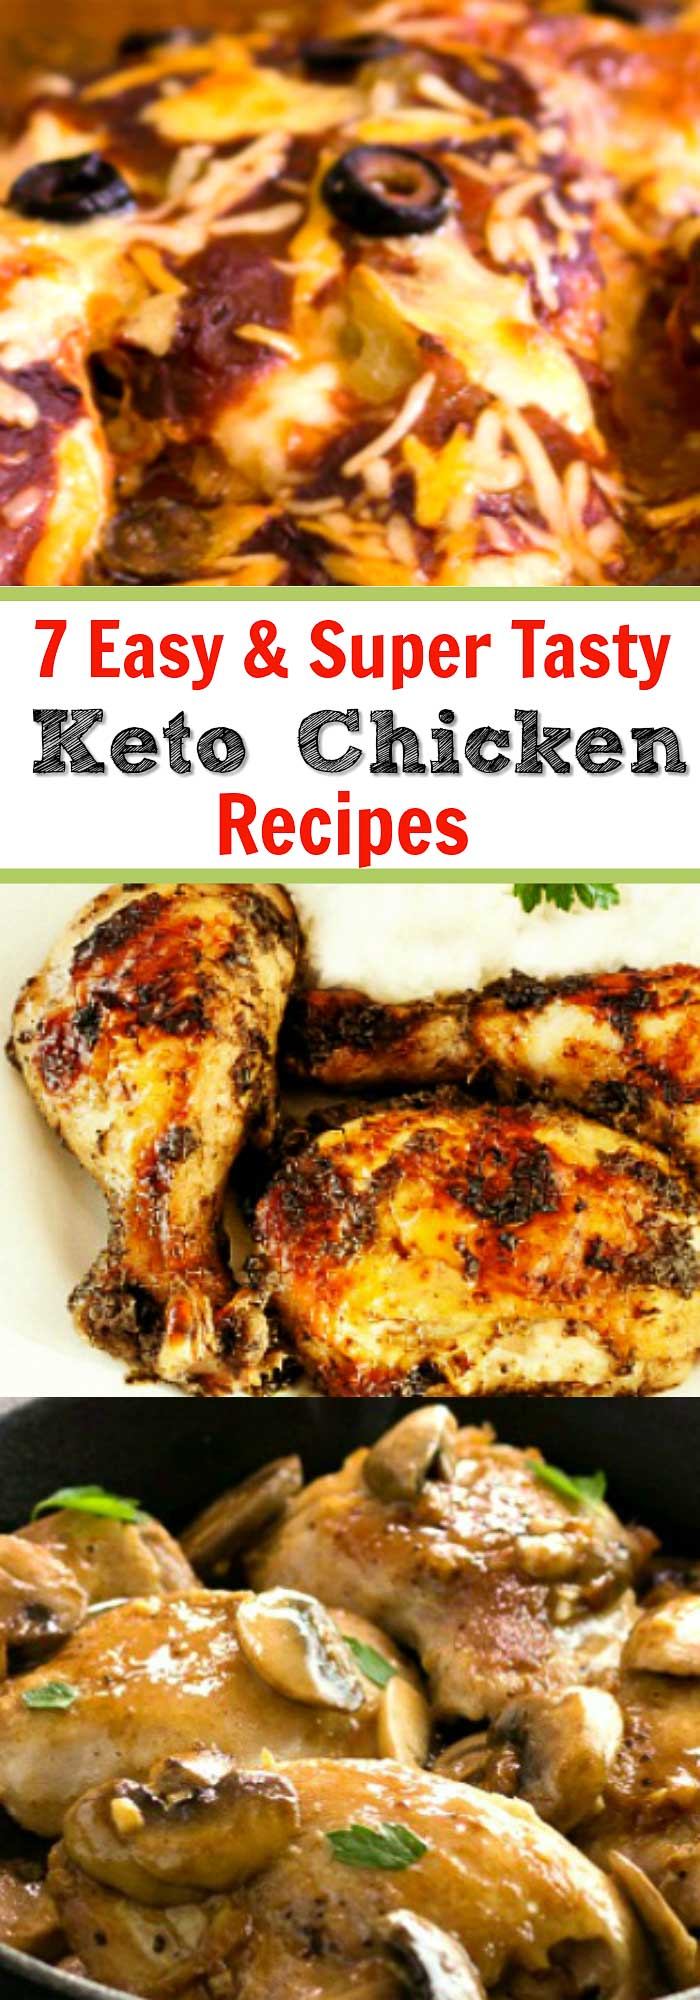 7 Best Easy Keto Chicken Recipes